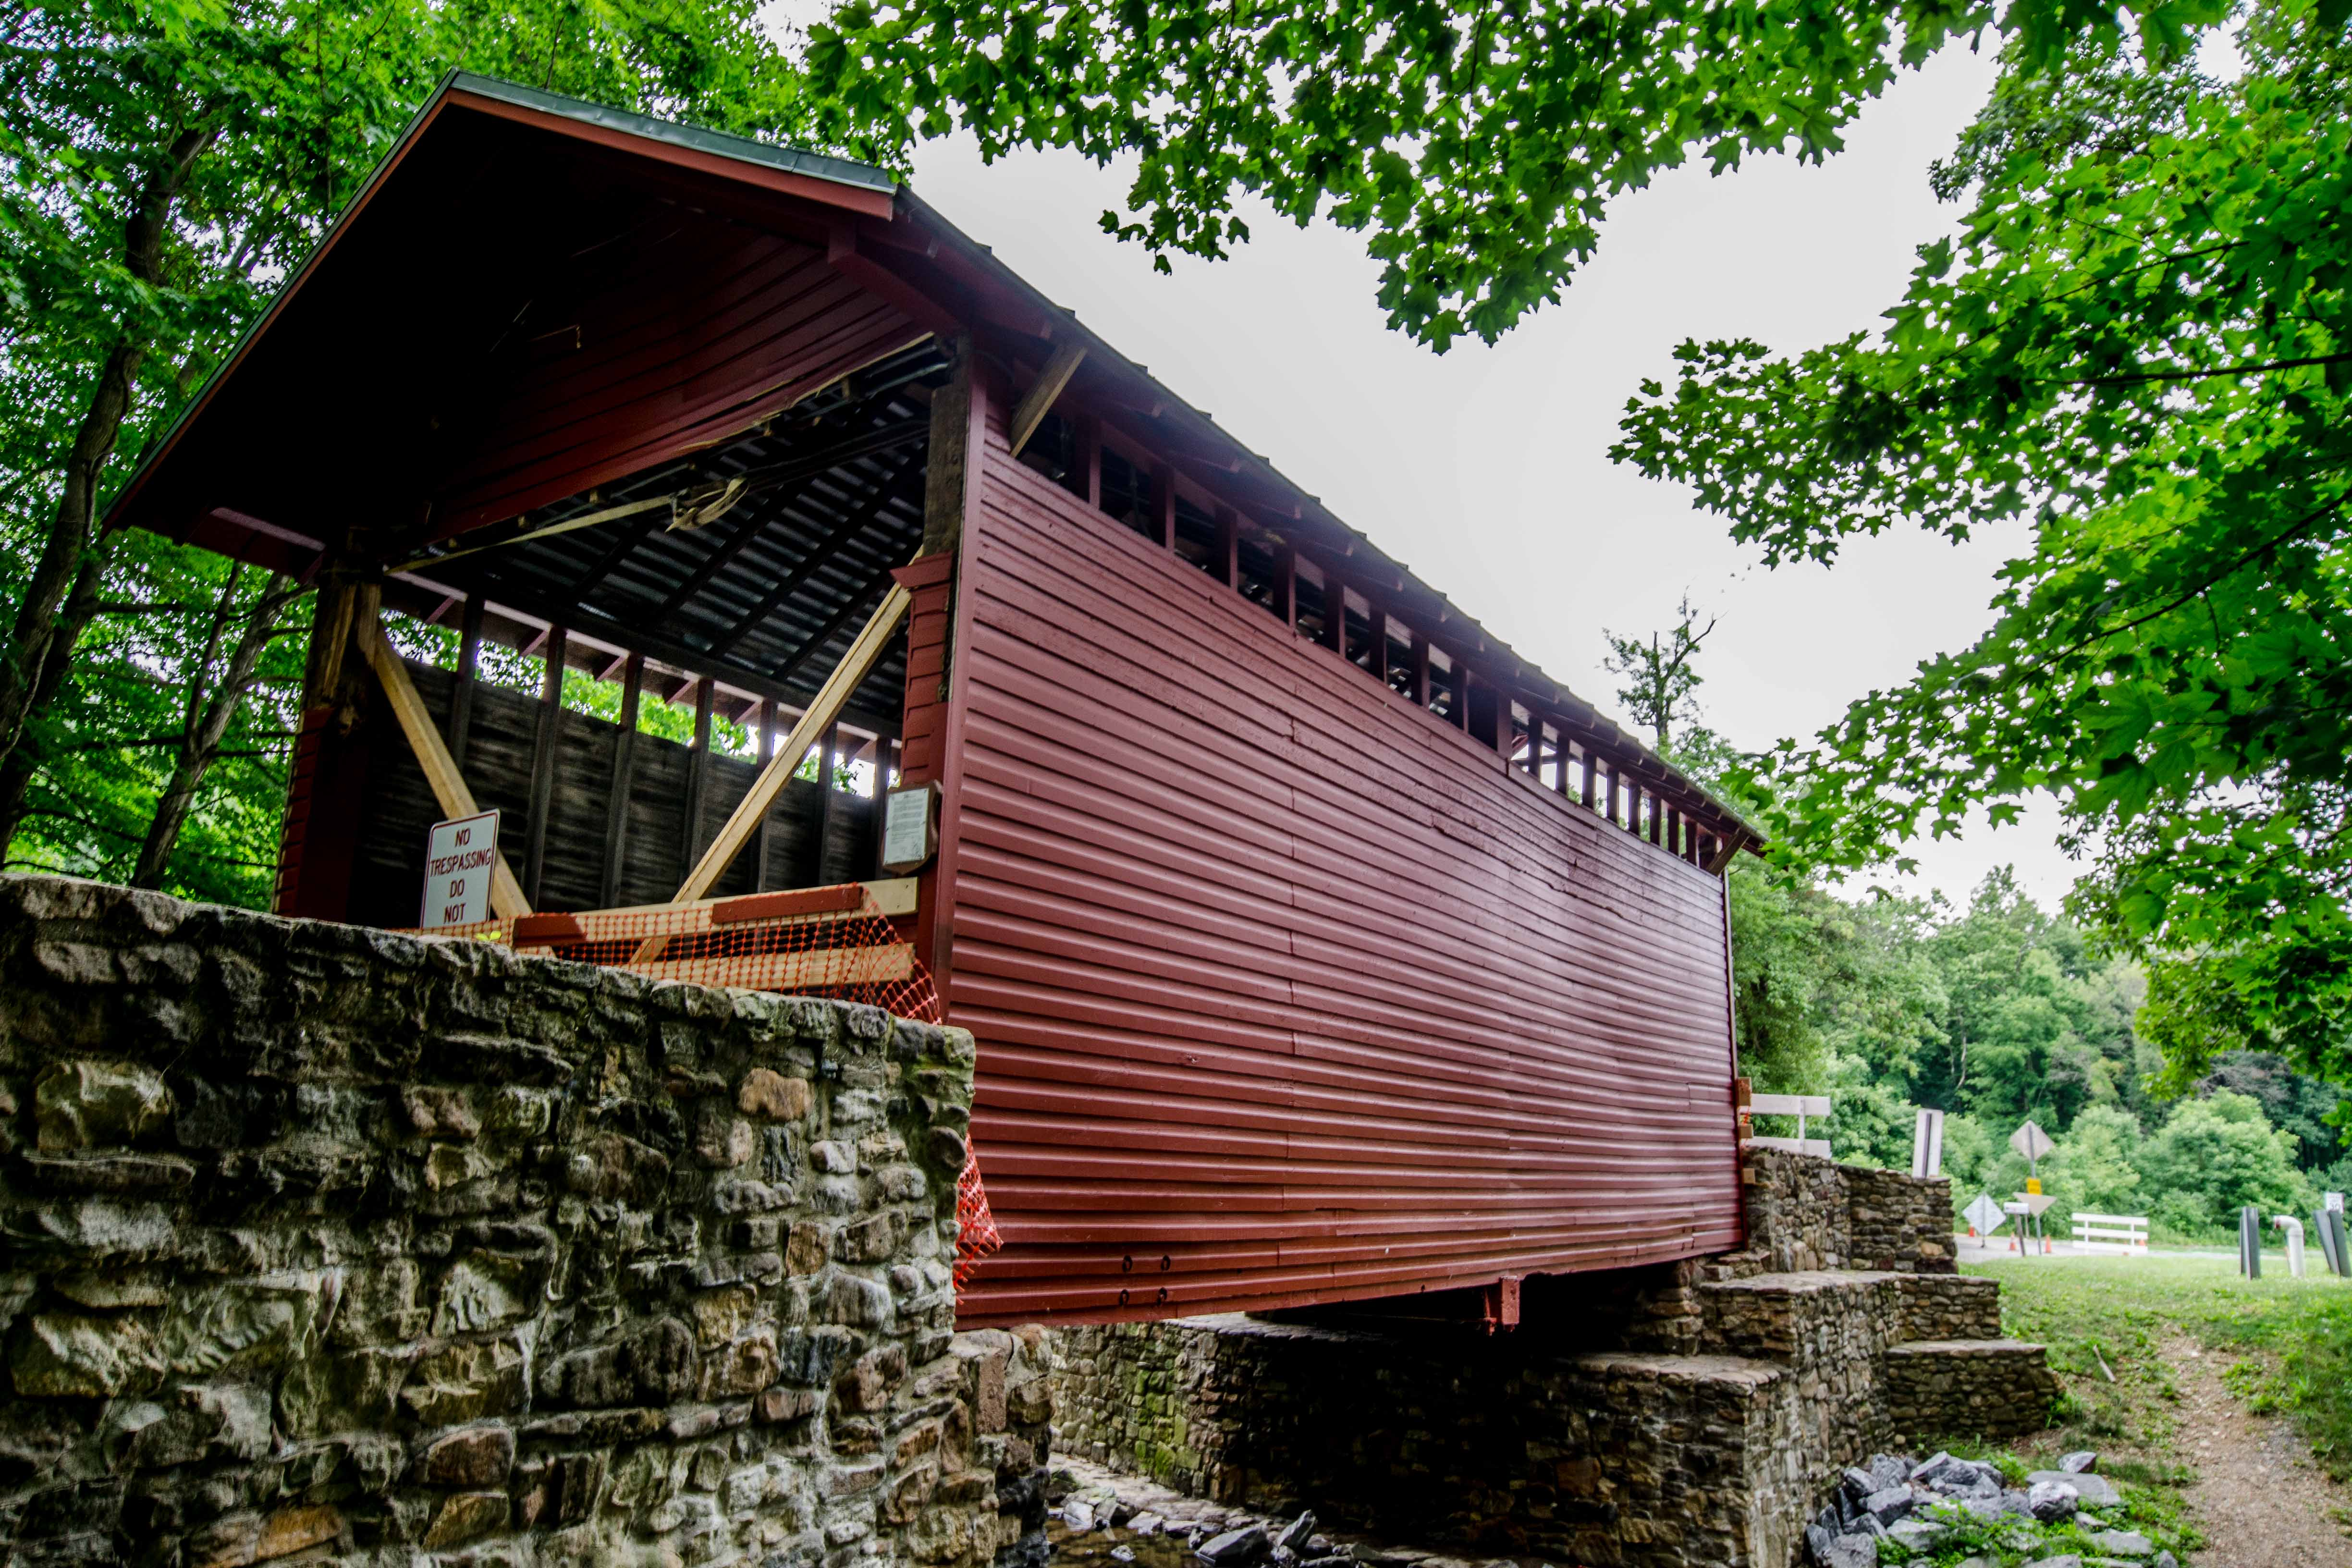 Roddy Road Covered Bridge, painted red, closed due to damage